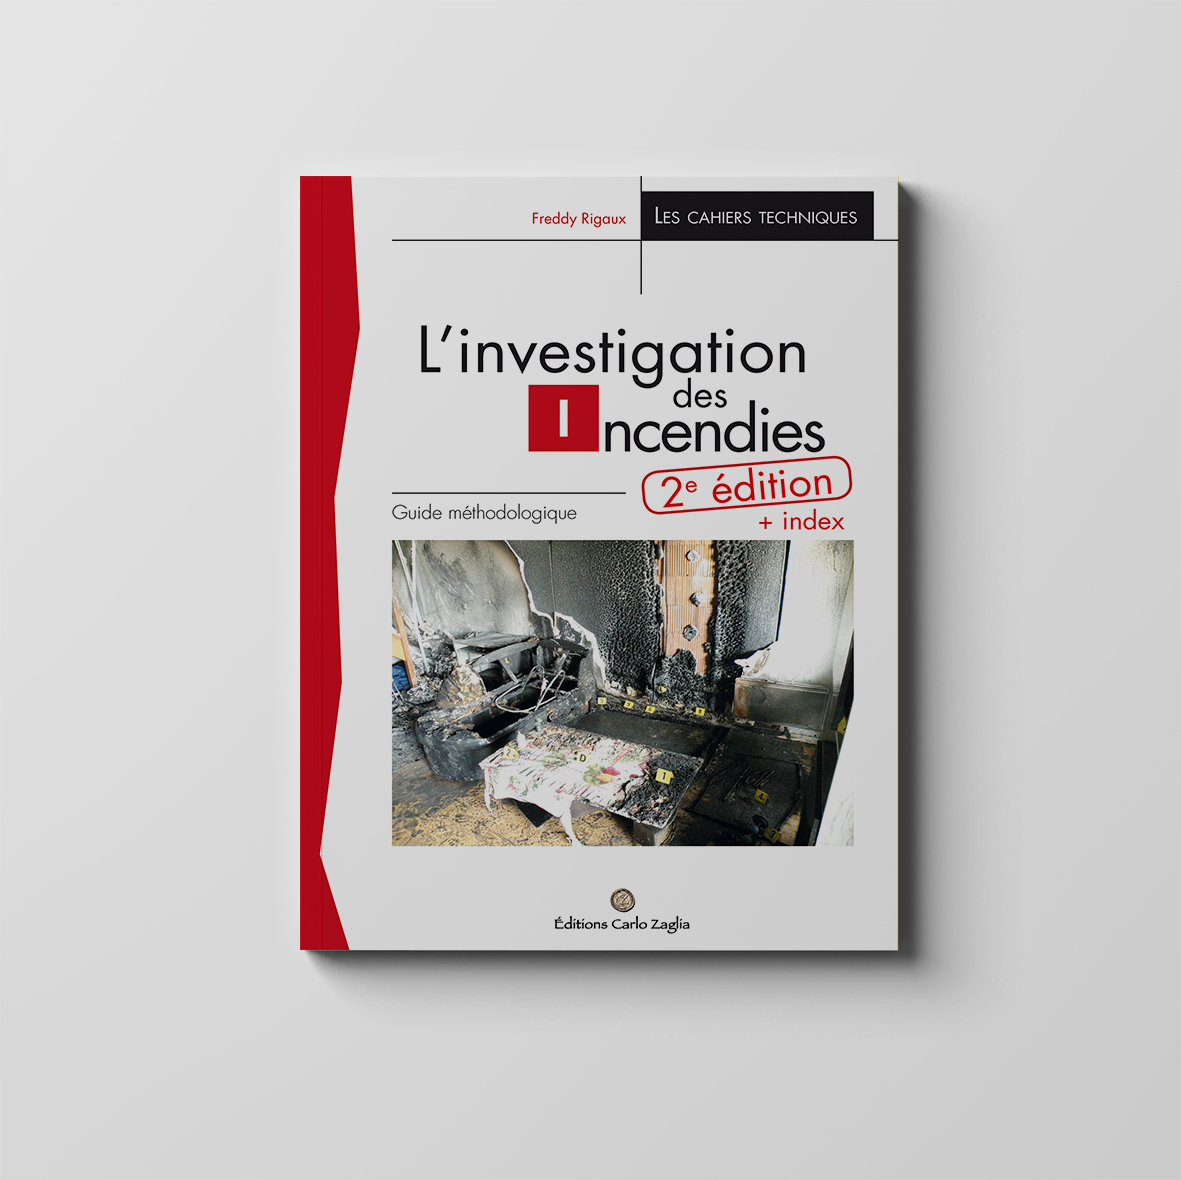 L'investigation des incendies